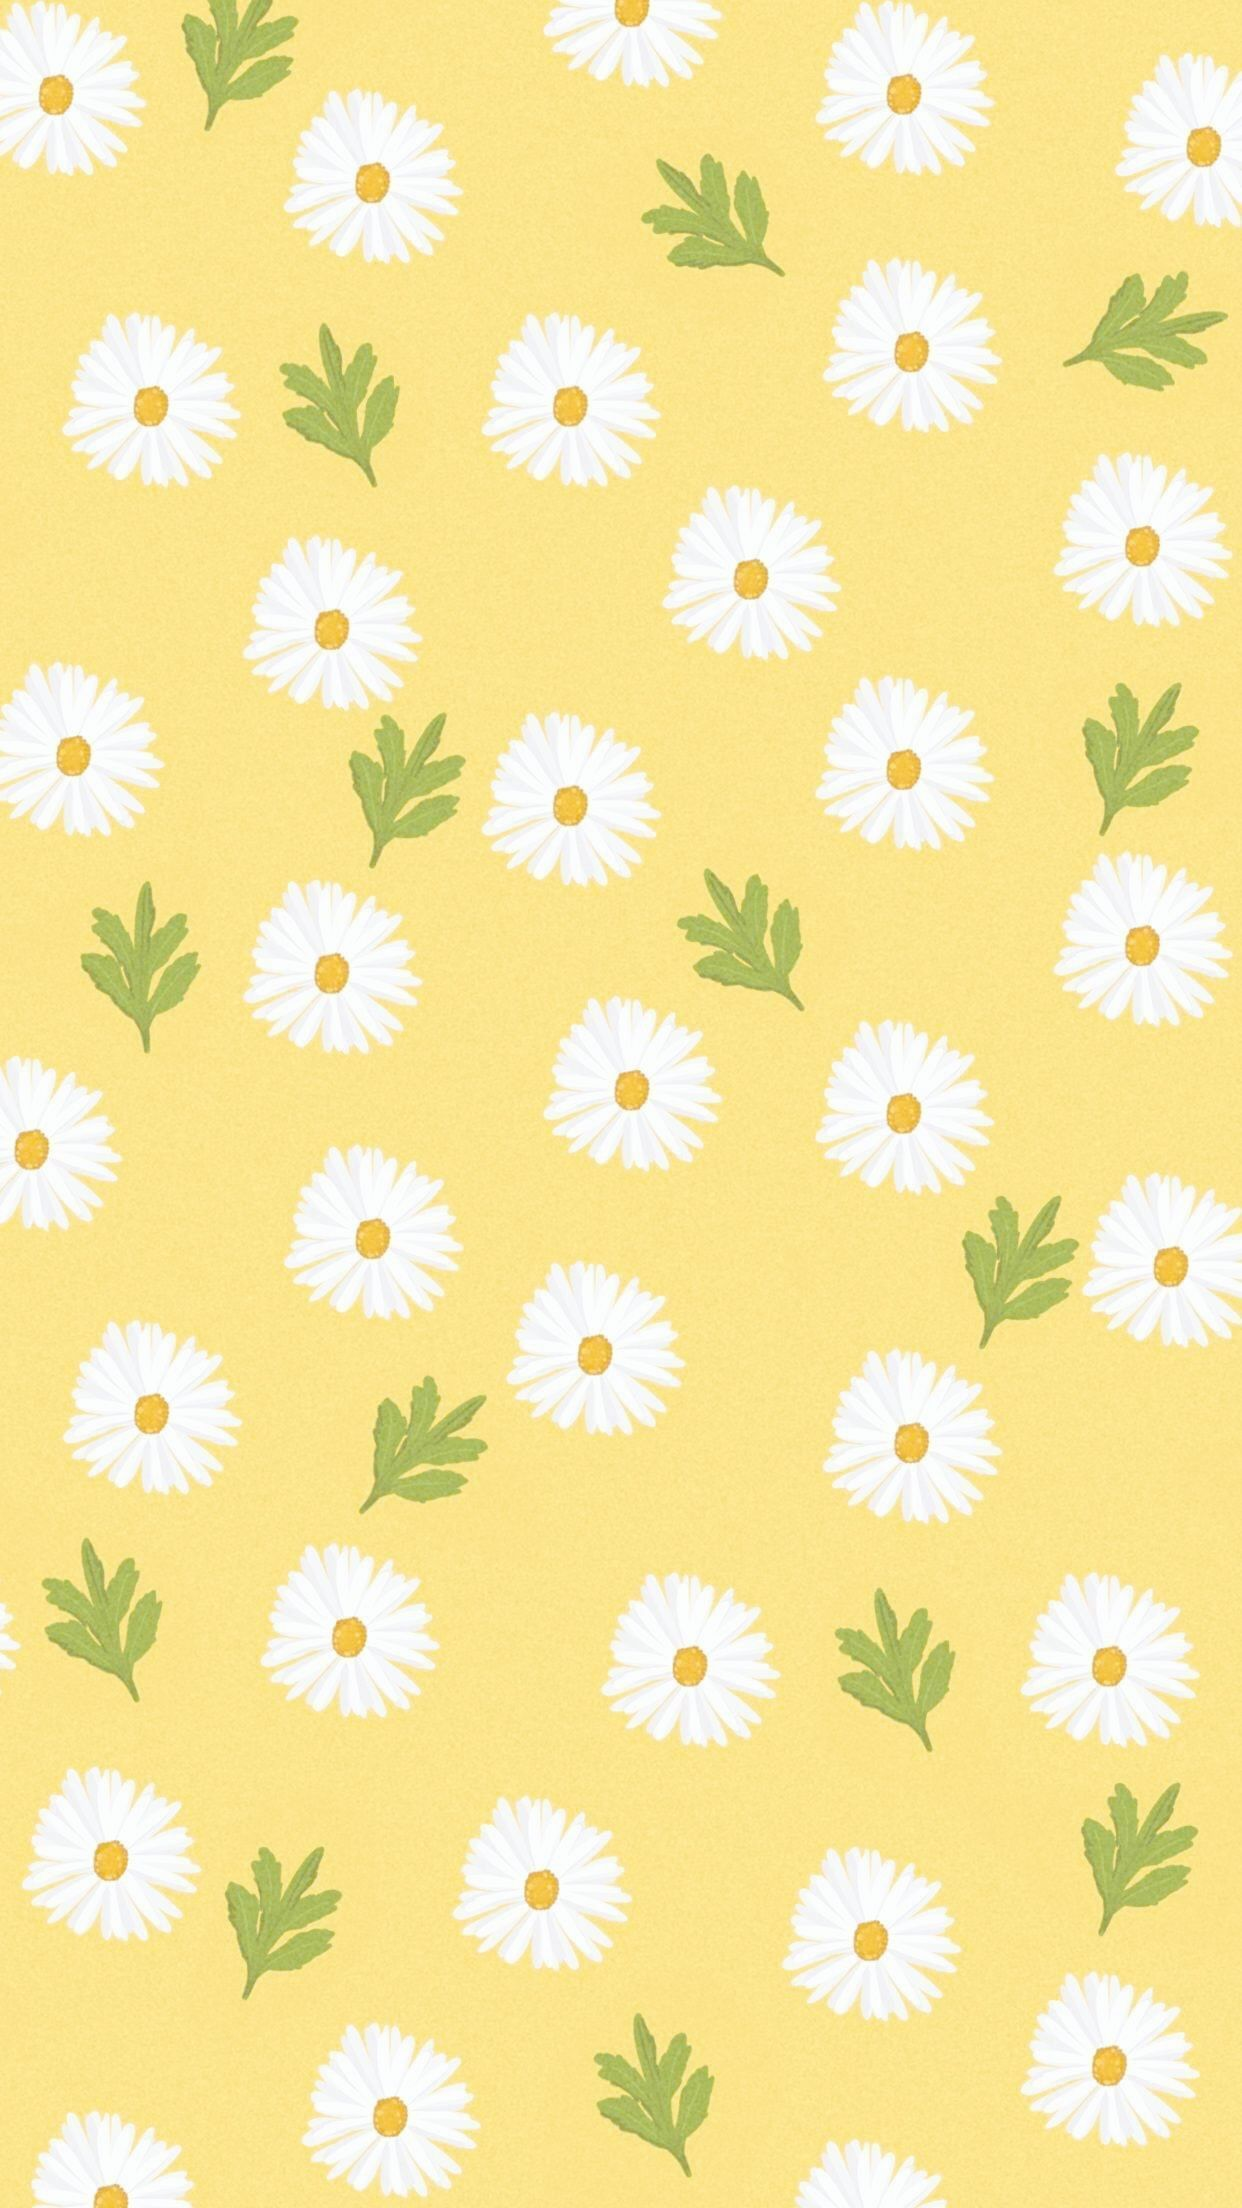 Daisies wallpaper Iphone#daisies #iphone #wallpaper#daisies #iphone #iphonedaisi… - Modern